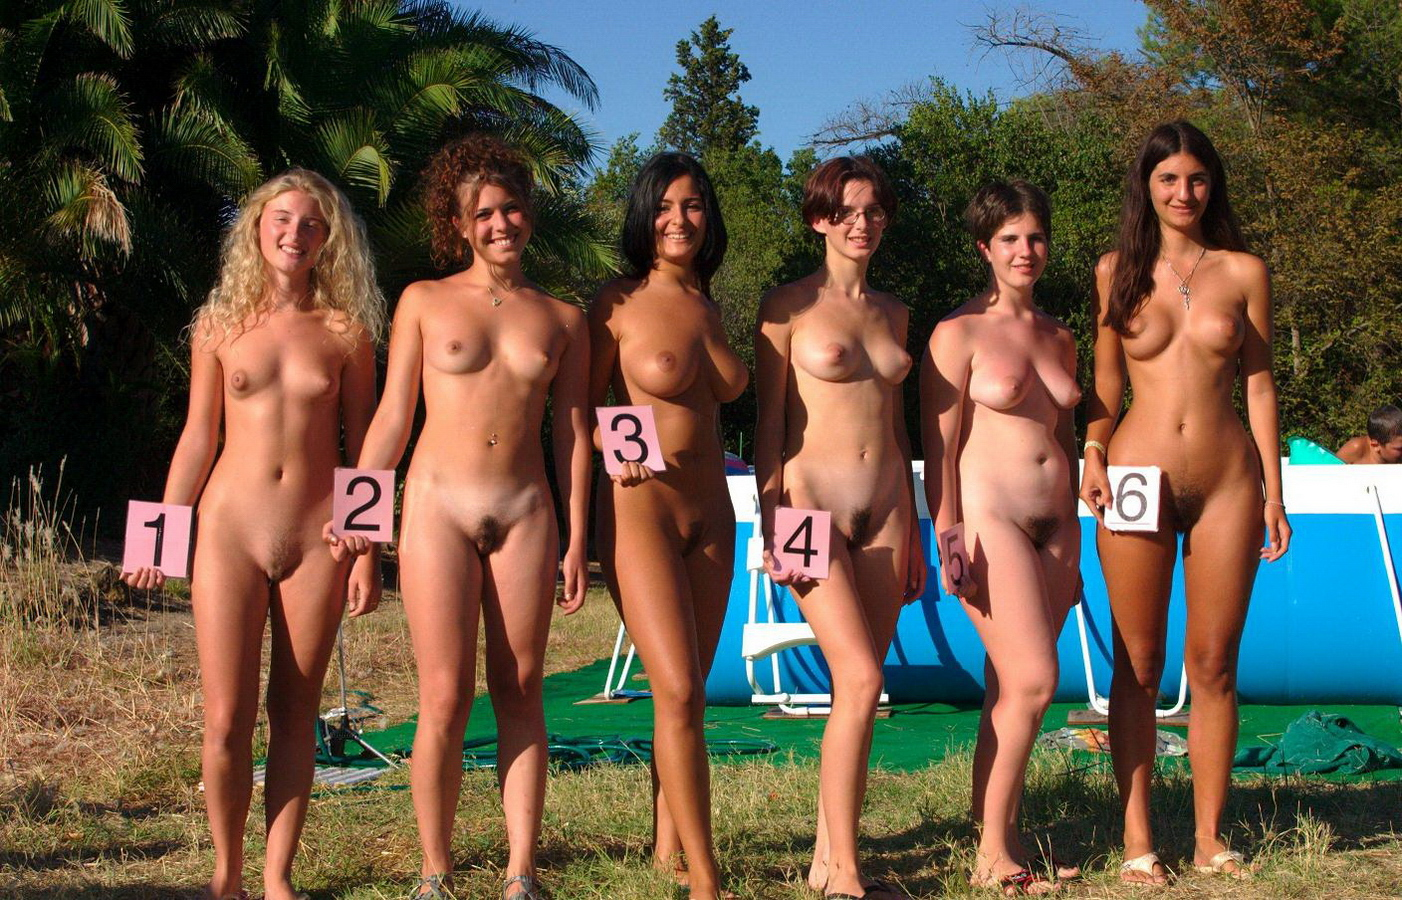 French  nudist family ... Nudiism.com - Nudists around the world